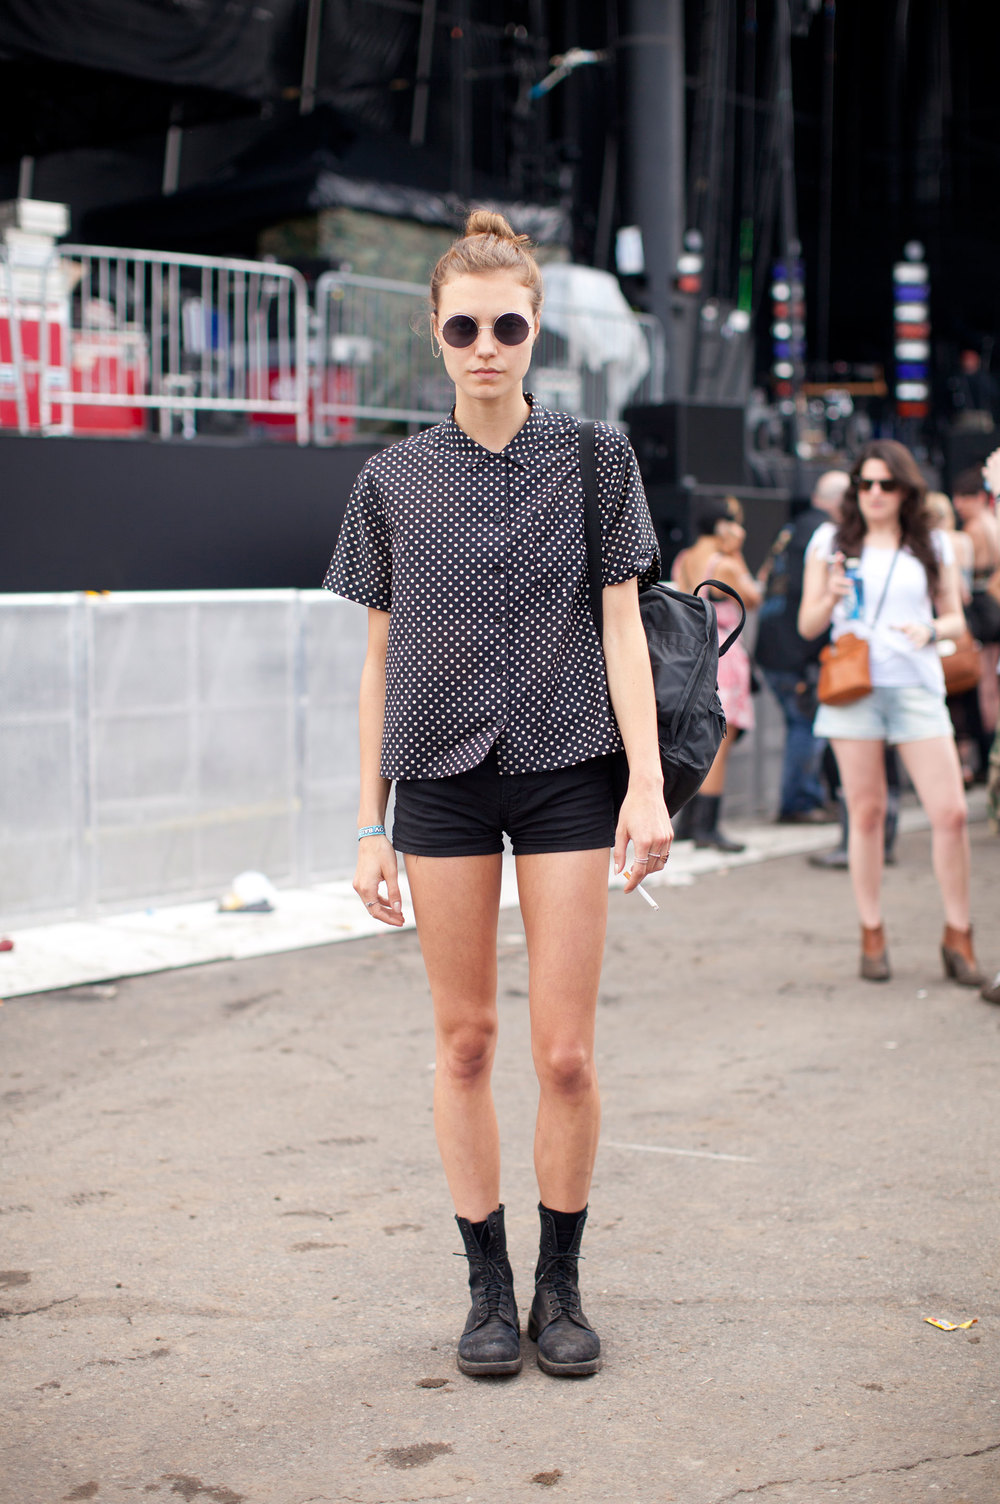 mcx-governors-ball-2013-festival-style-15-s2.jpg